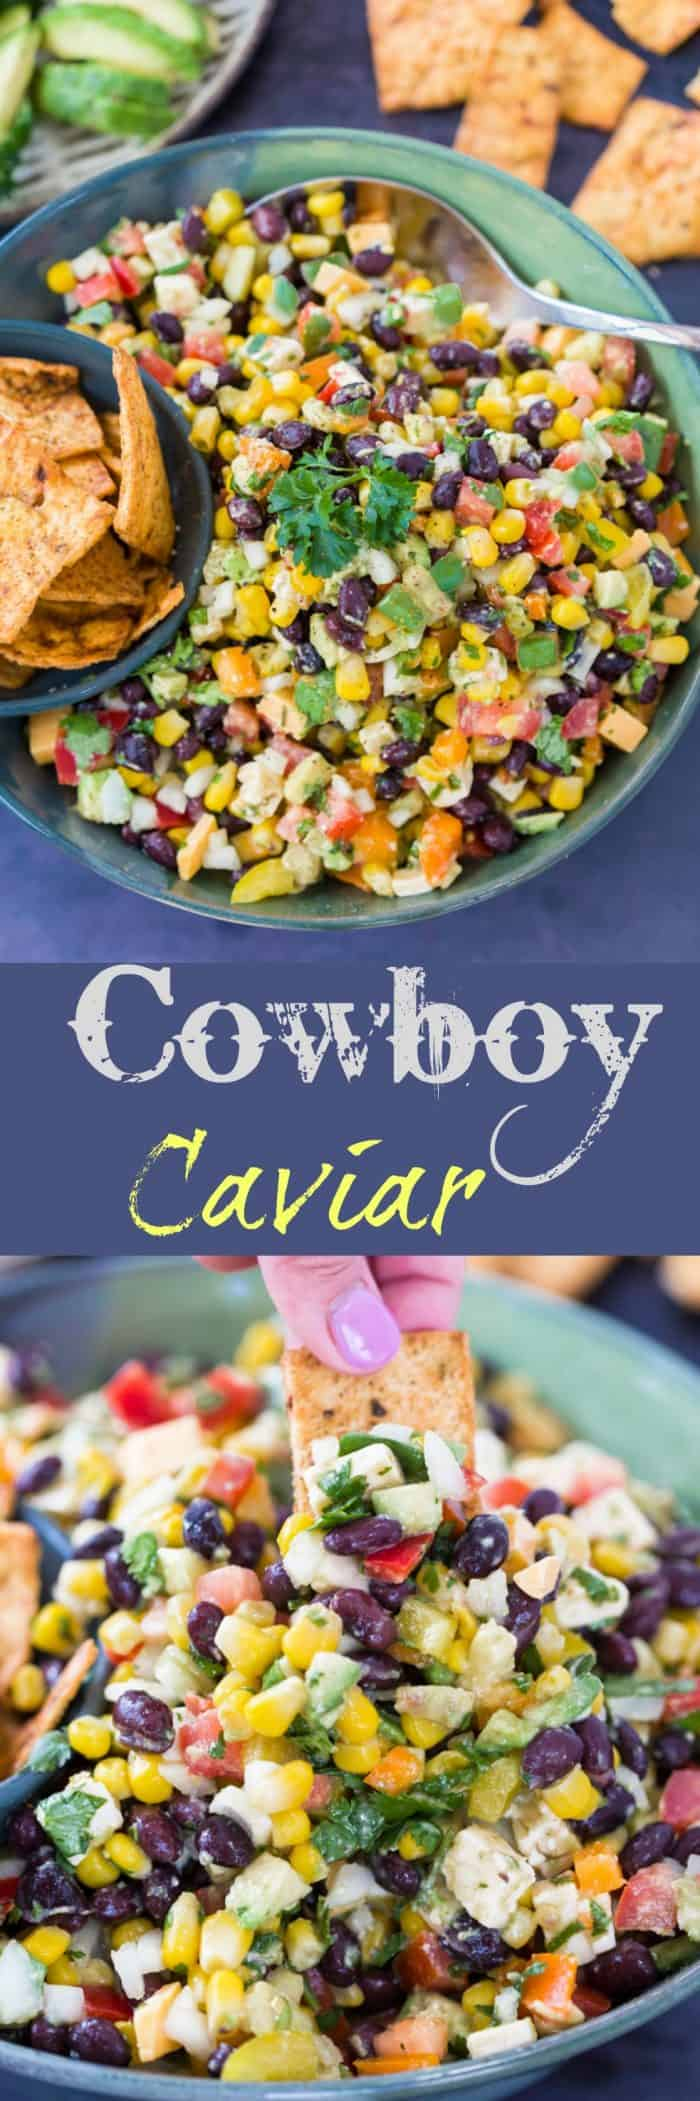 This cowboy caviar is loaded with black beans, sweet corn, avocado, and a delicious variety of other ingredients that blend perfectly together in this easy to make dip. | The Cozy Cook | #Dip #Appetizers #Beans #Vegetarian #Meatless #CowboyCaviar #Corn #BlackBeans #SummerRecipes